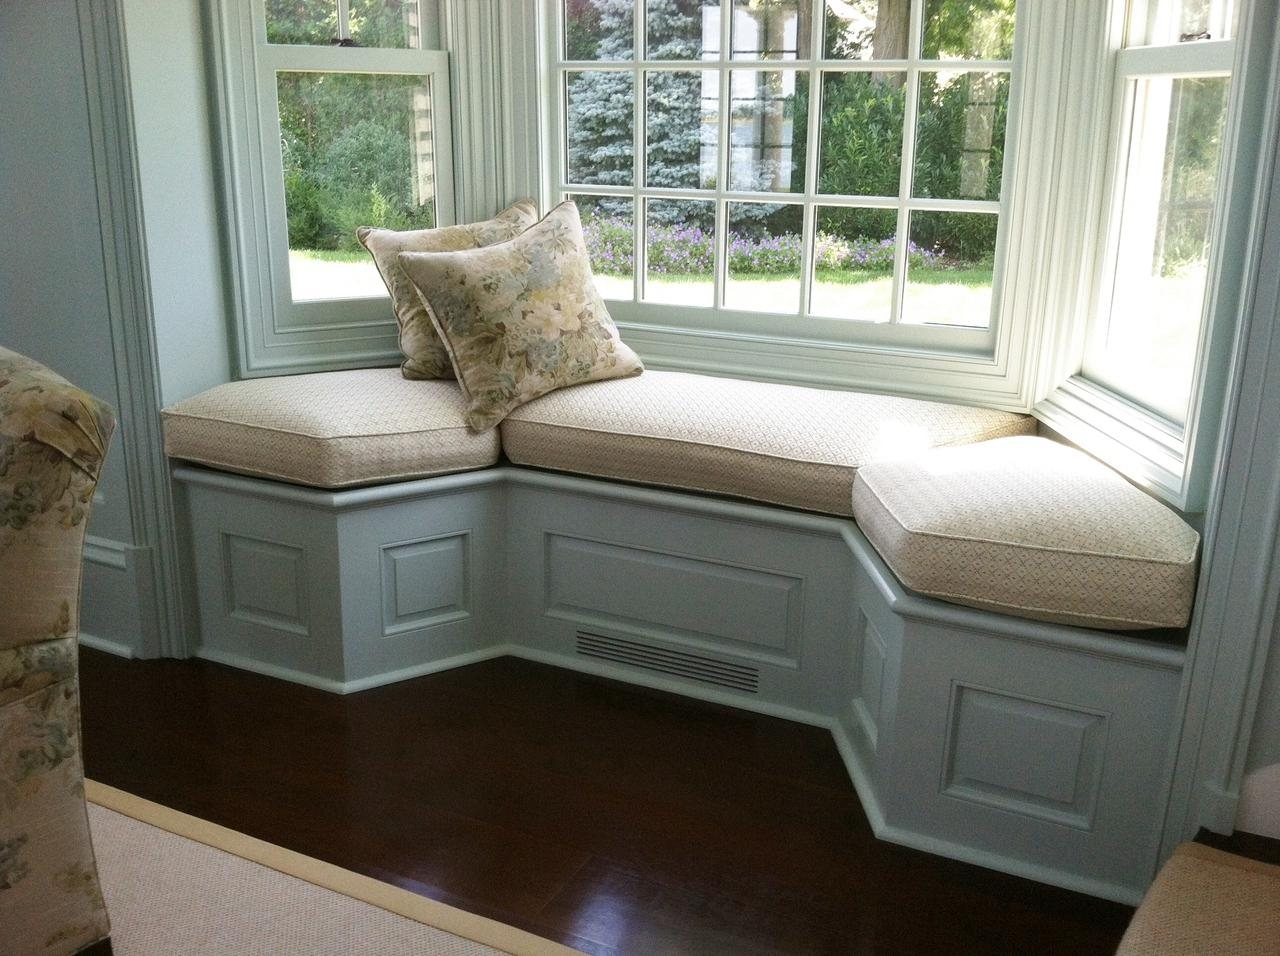 Sofas Center : Surprising Bay Window Sofa Images Concept For Inside Sofas For Bay Window (View 20 of 20)